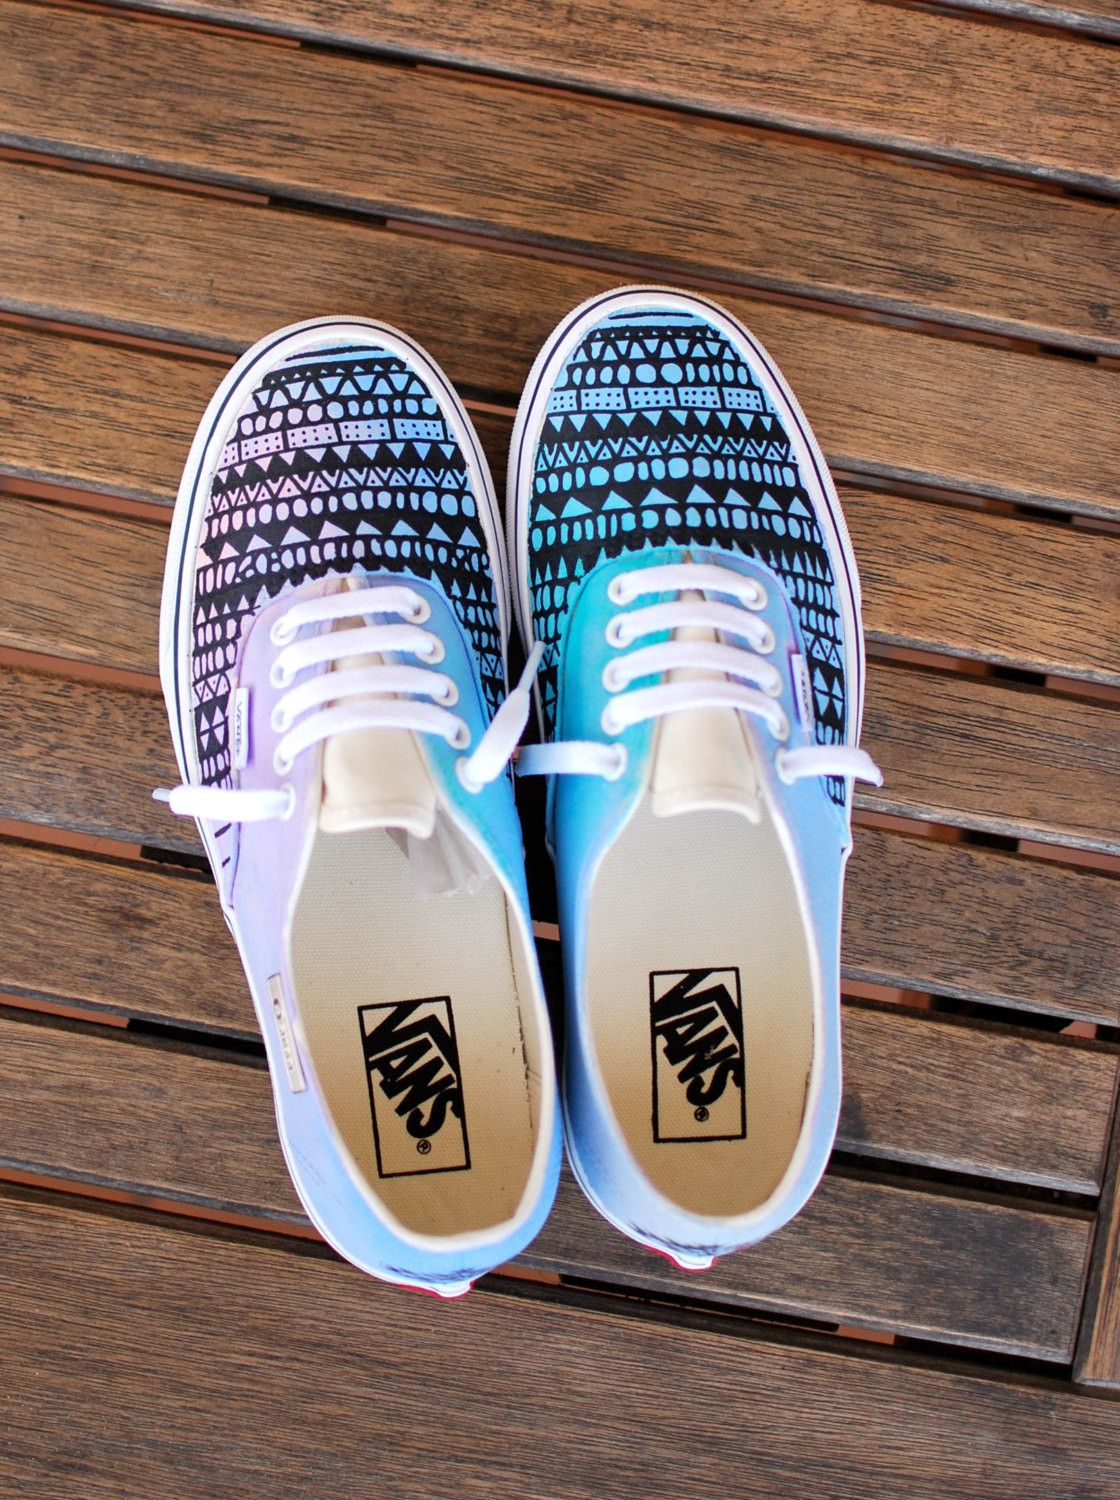 Drawn vans cute Shoes Tribal BStreetShoes Inspired Universe